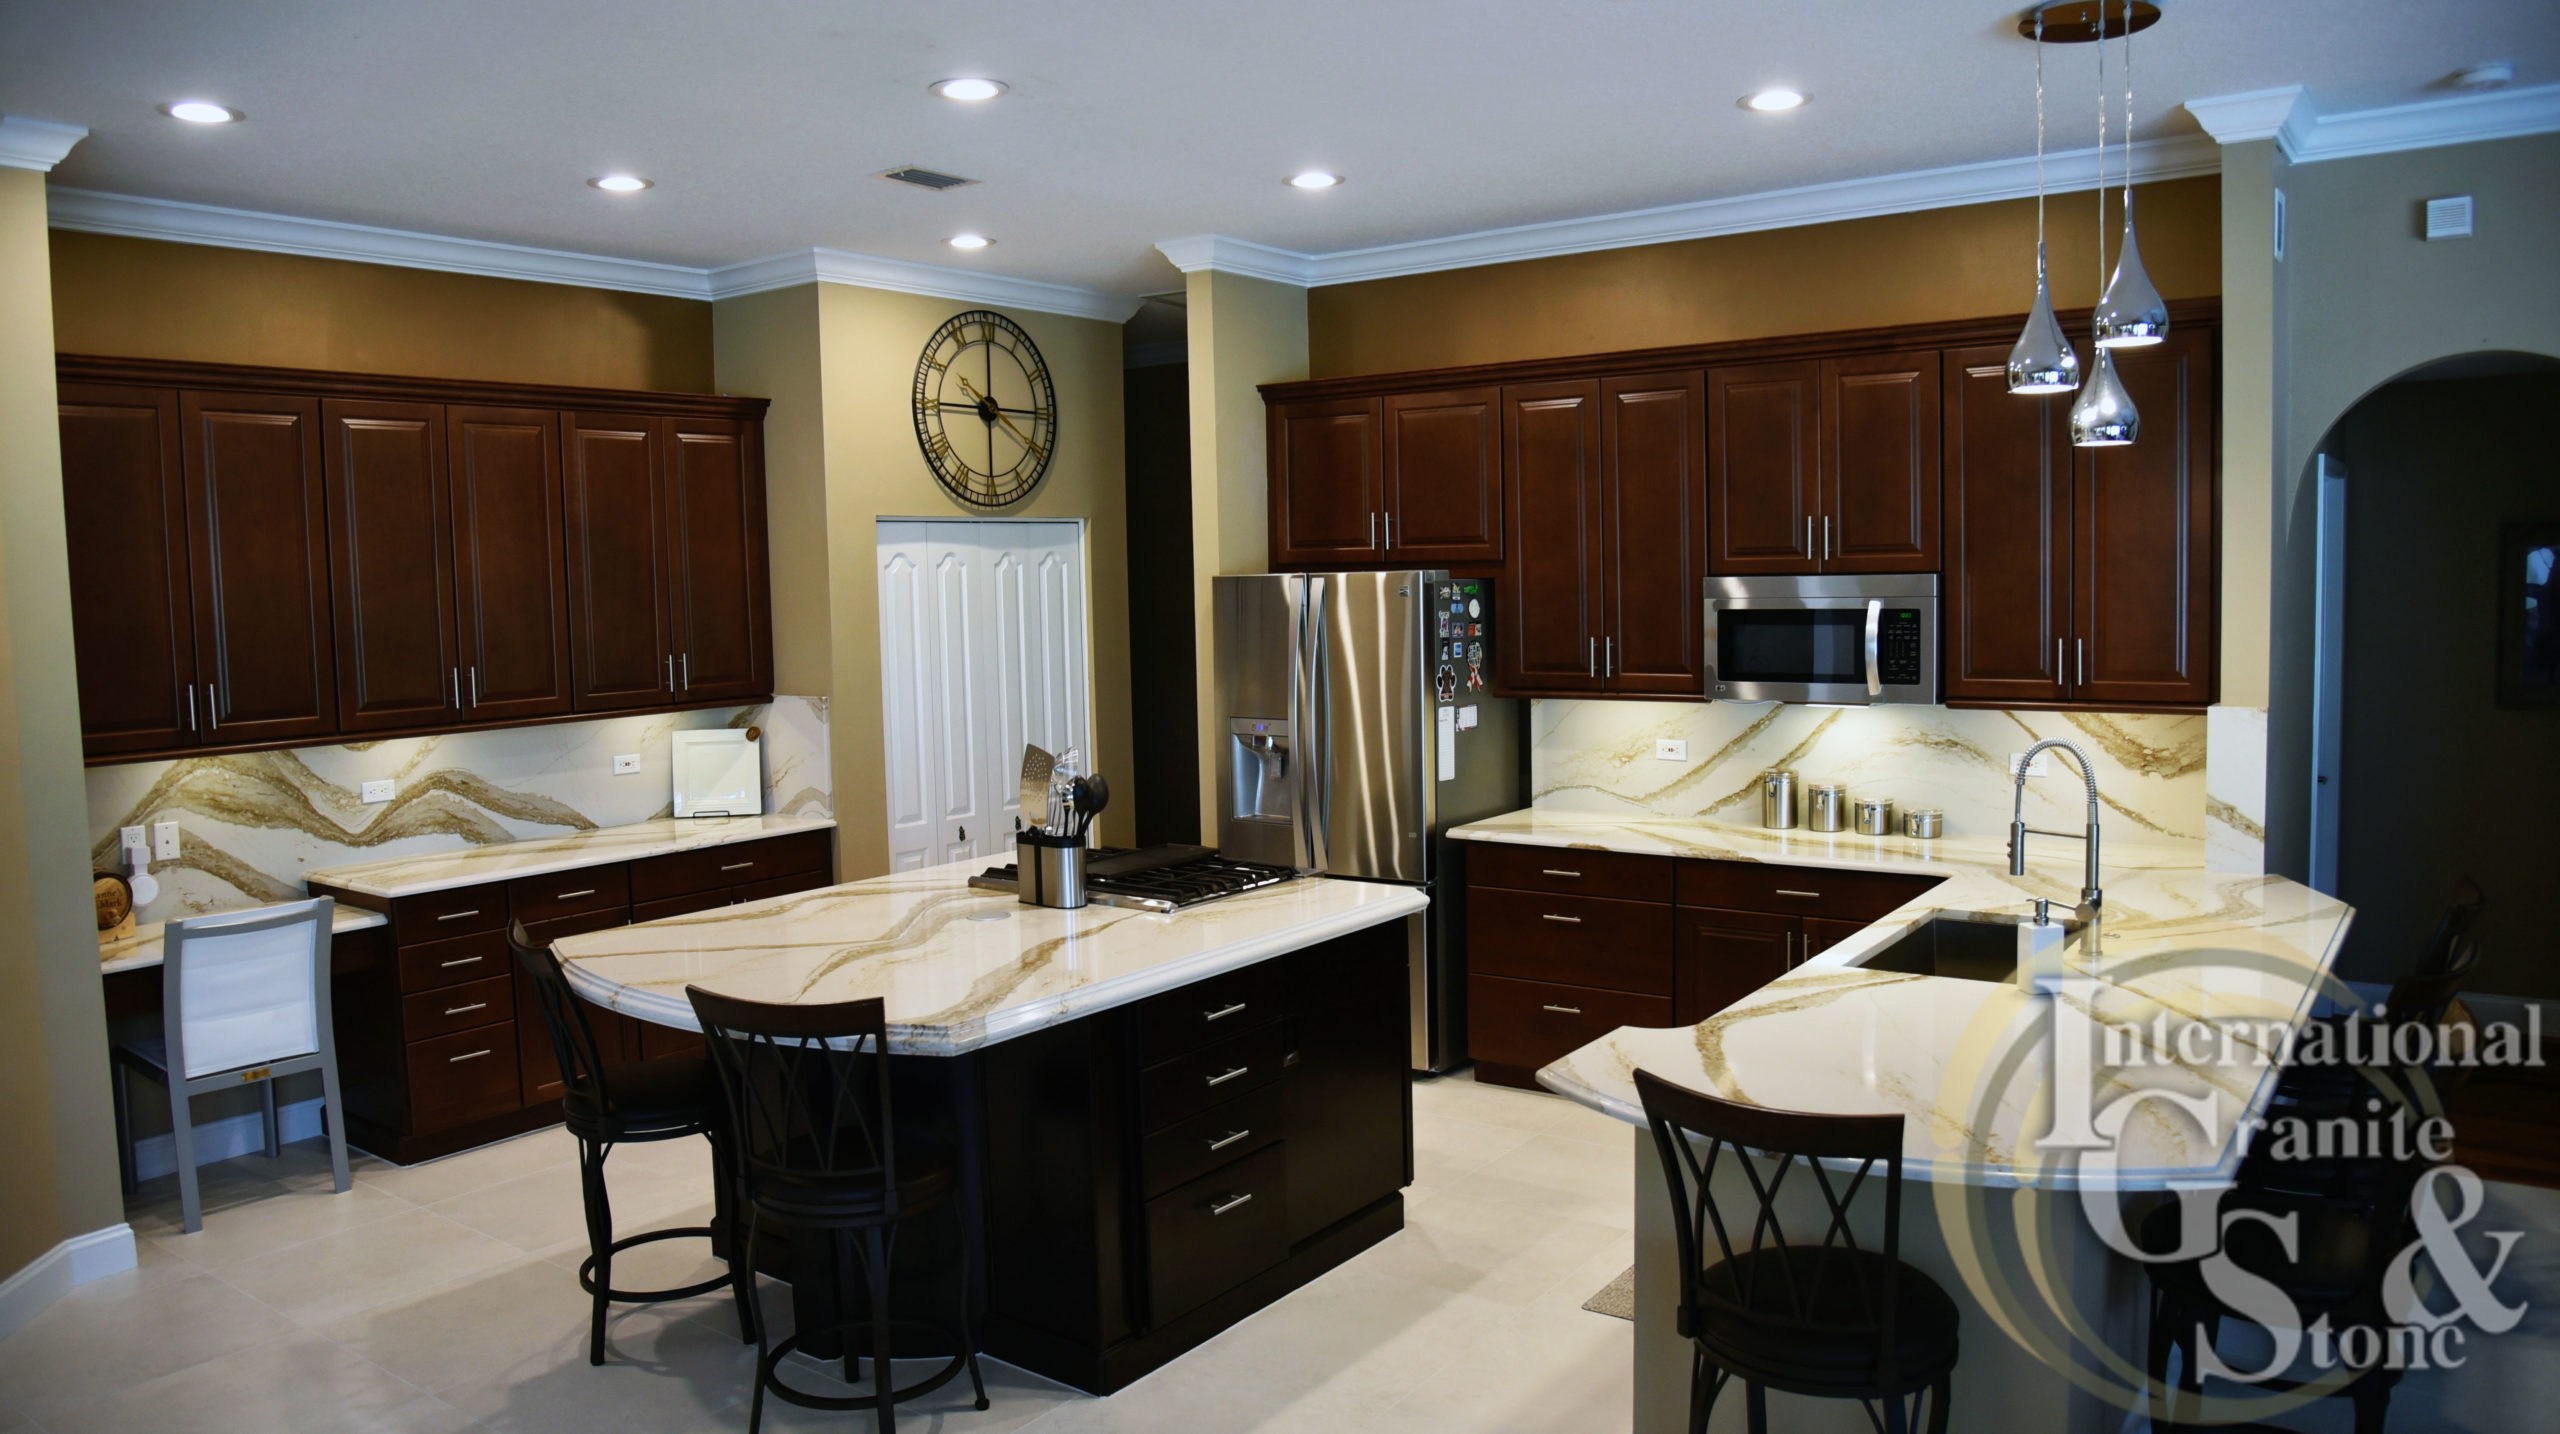 Brittanicca Gold Cambria Quartz Countertops in Kitchen with Backsplash and Dark Wood Cabinets in Fitzgerald Home Remodel